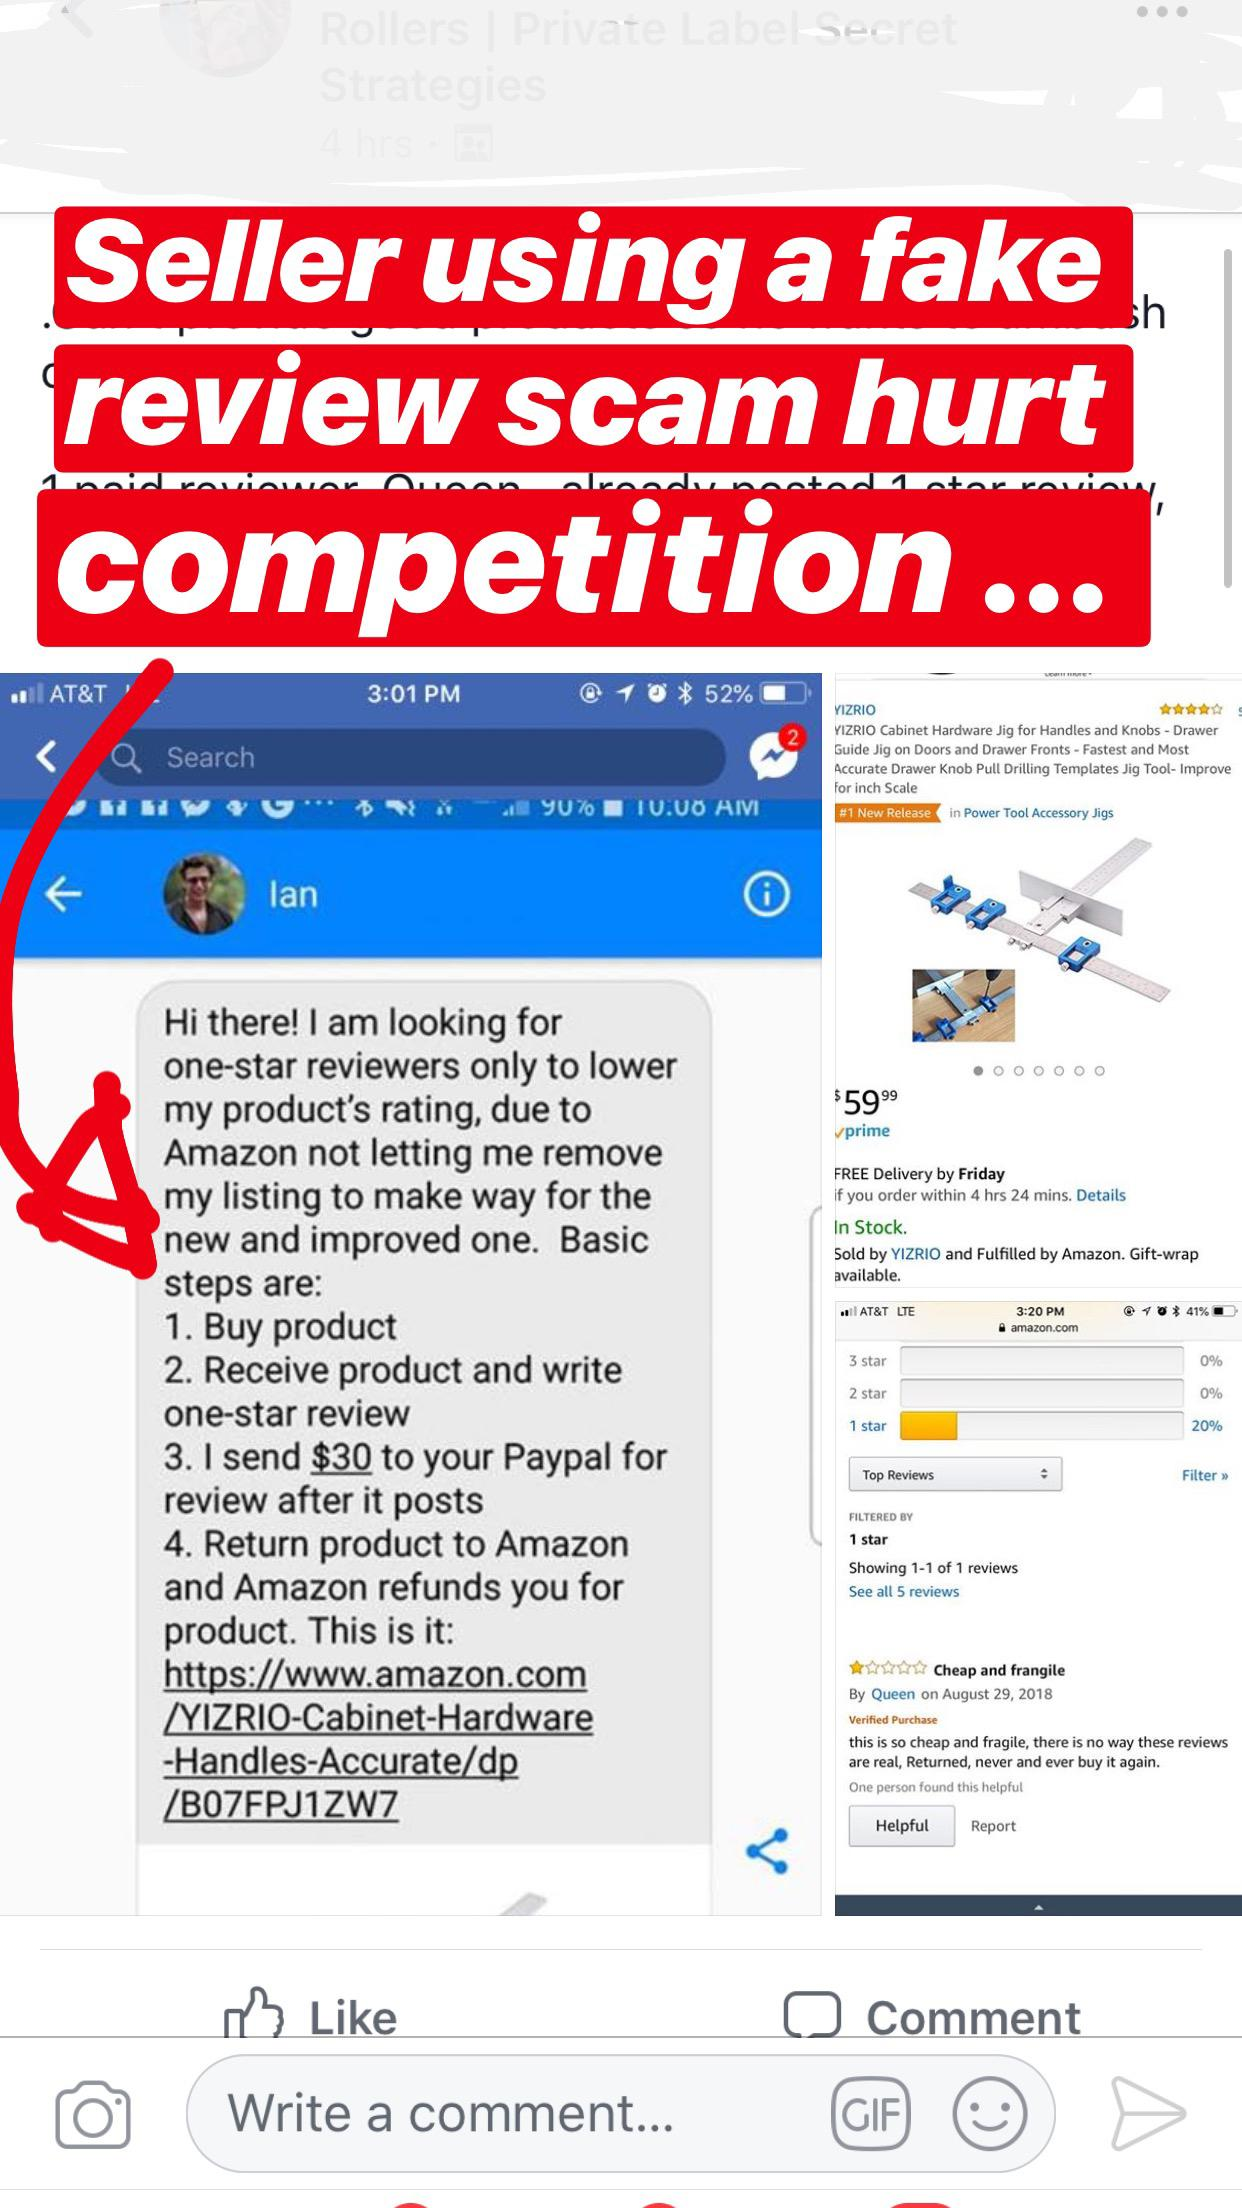 War is On: How to Fight Unfair Competition on Amazon - Black Hat